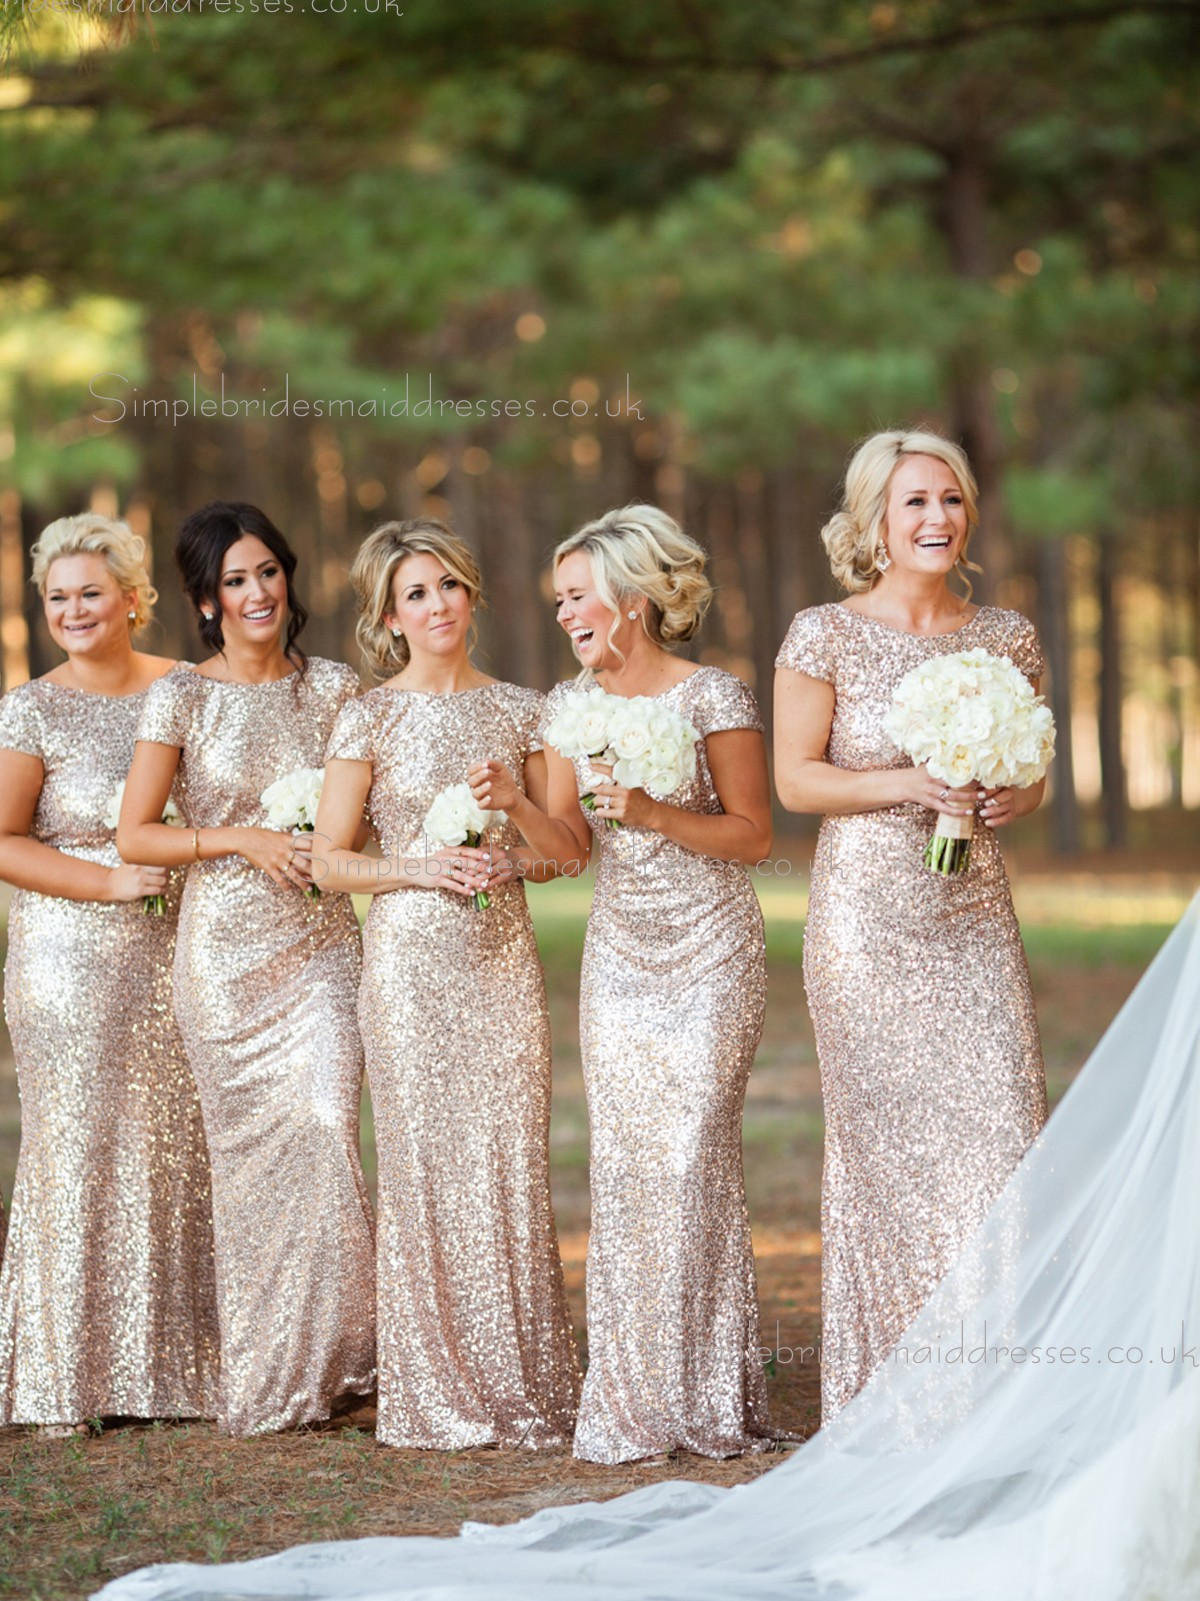 Hot sale sparkly sequin mermaid long gold champagne rose gold hot sale sparkly sequin long gold champagne rose gold bridesmaid dress ombrellifo Image collections